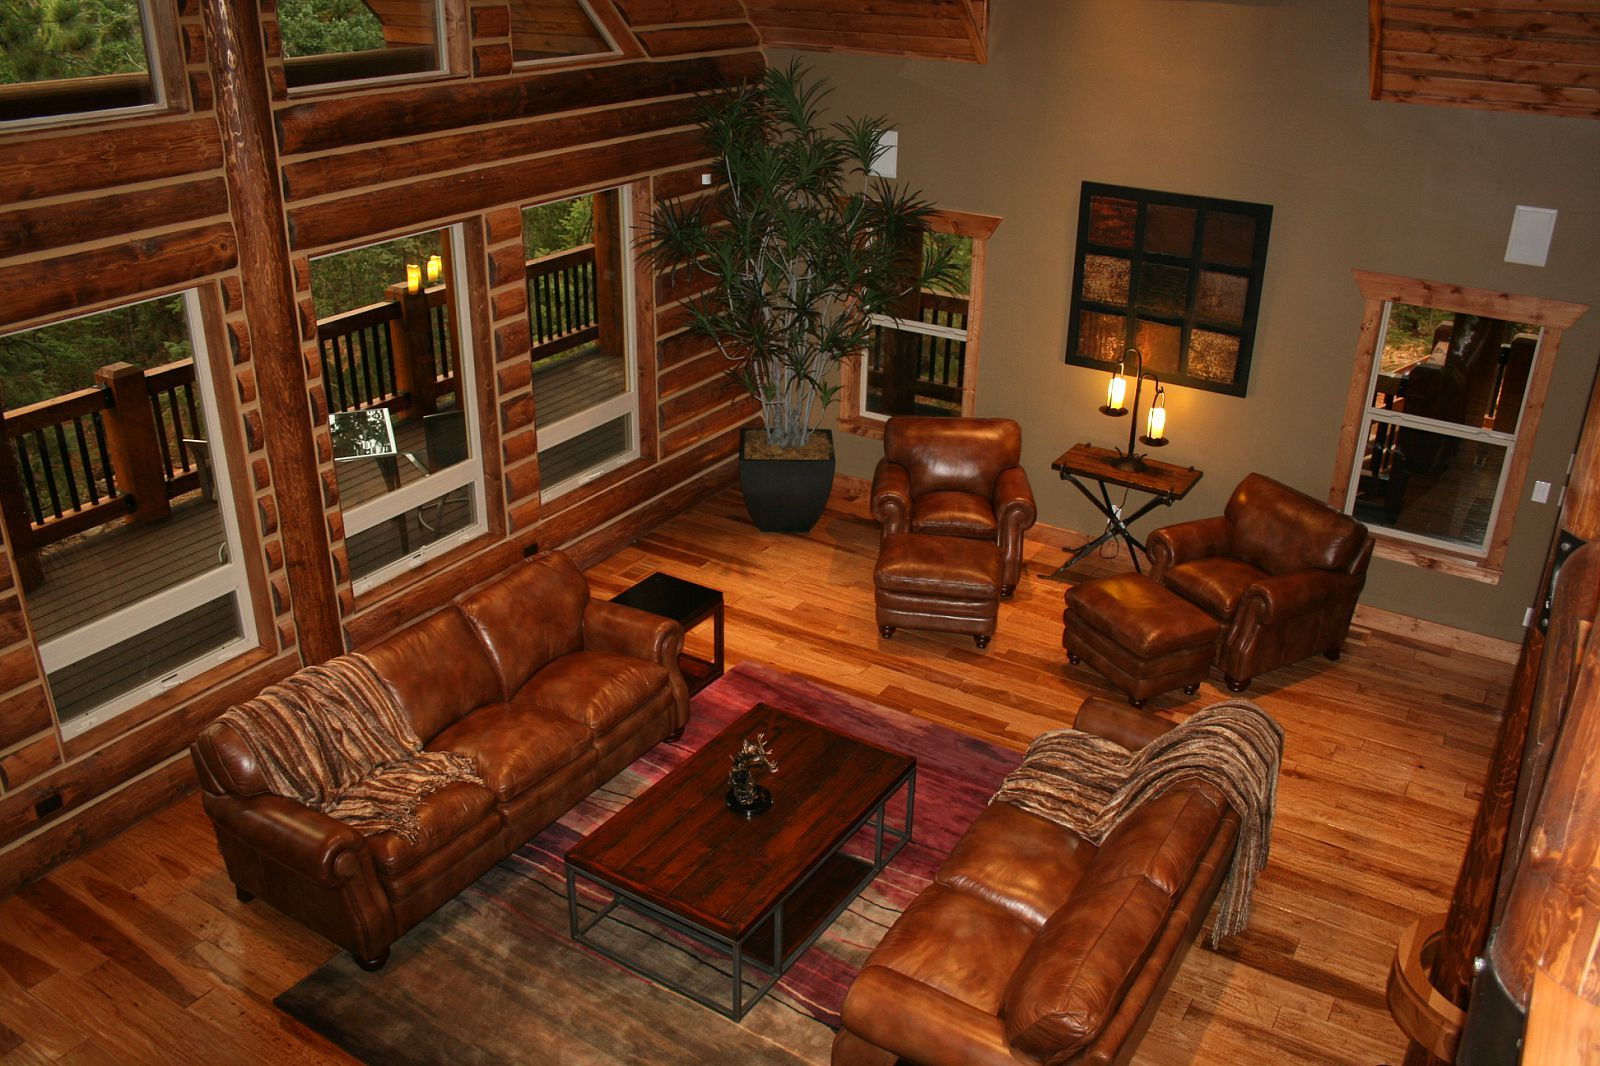 find this pin and more on log home life log cabin interior design wooden cabin decorating ideas - Cabin Living Room Decor